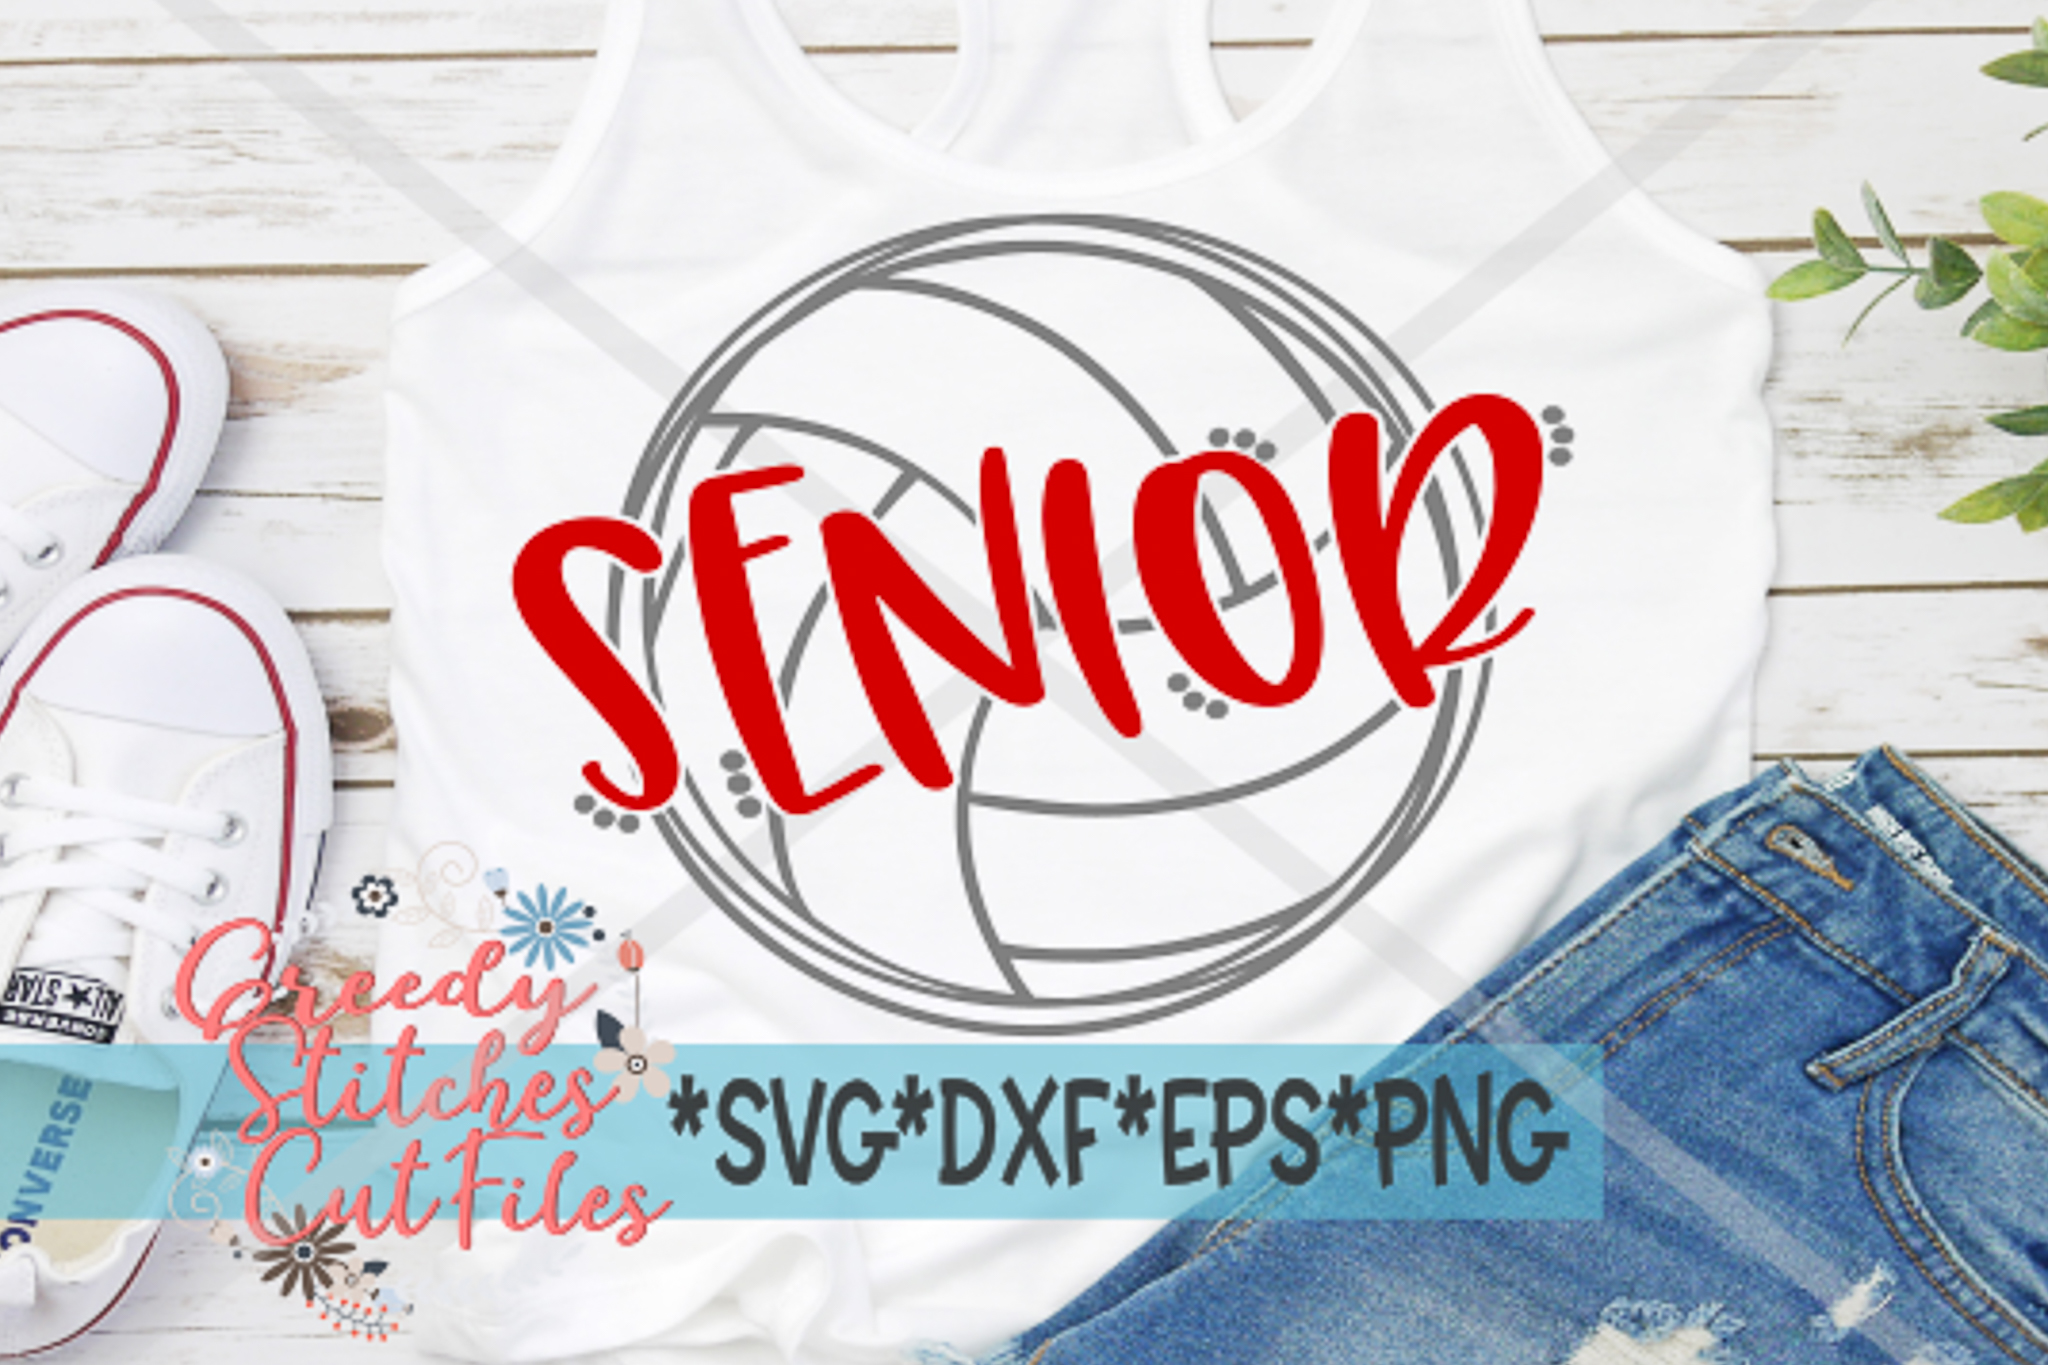 Senior Volleyball SVG, DXF, EPS, PNG Files example image 4